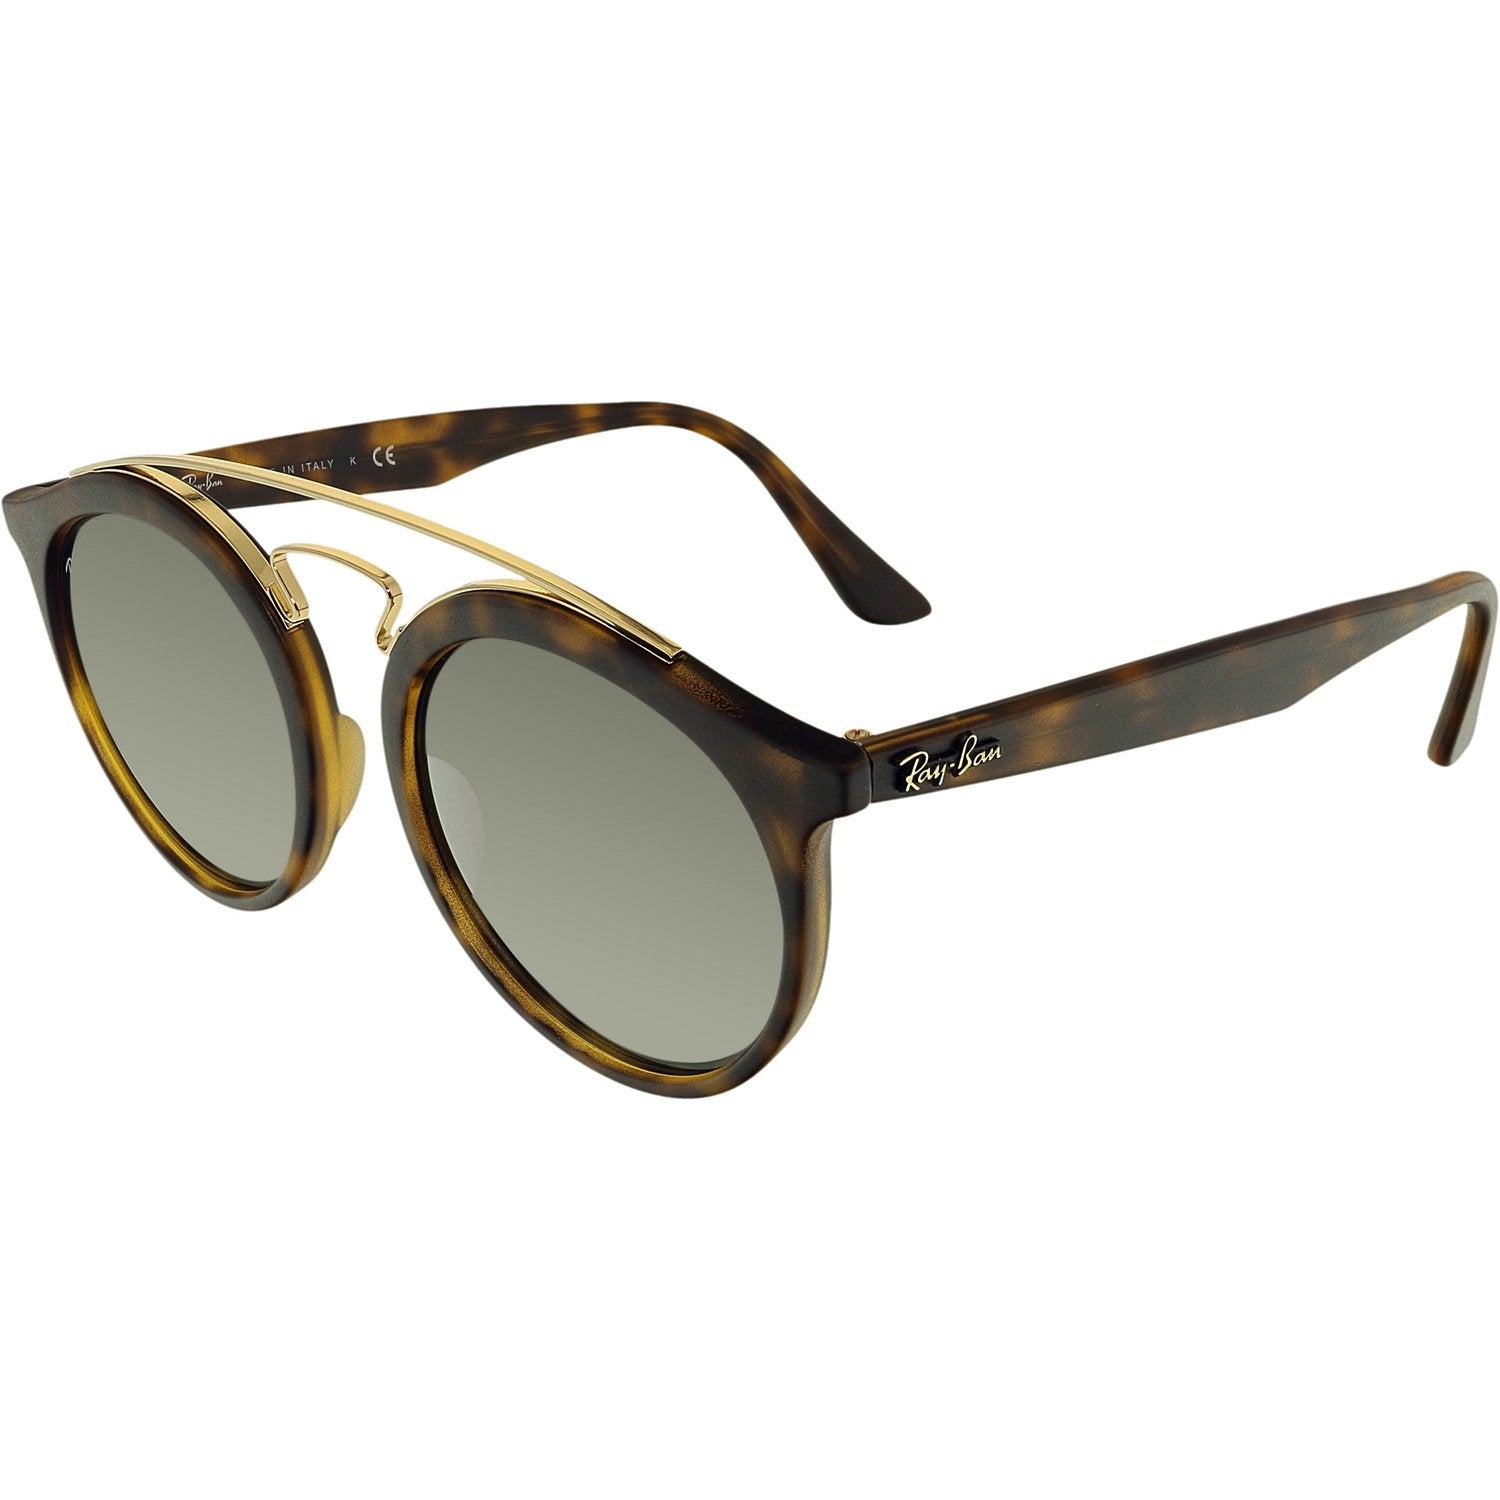 0d2762892a Shop Ray-Ban Mirrored Gatsby I RB4256-60926G-49 Brown Round Sunglasses -  Free Shipping Today - Overstock.com - 18900546